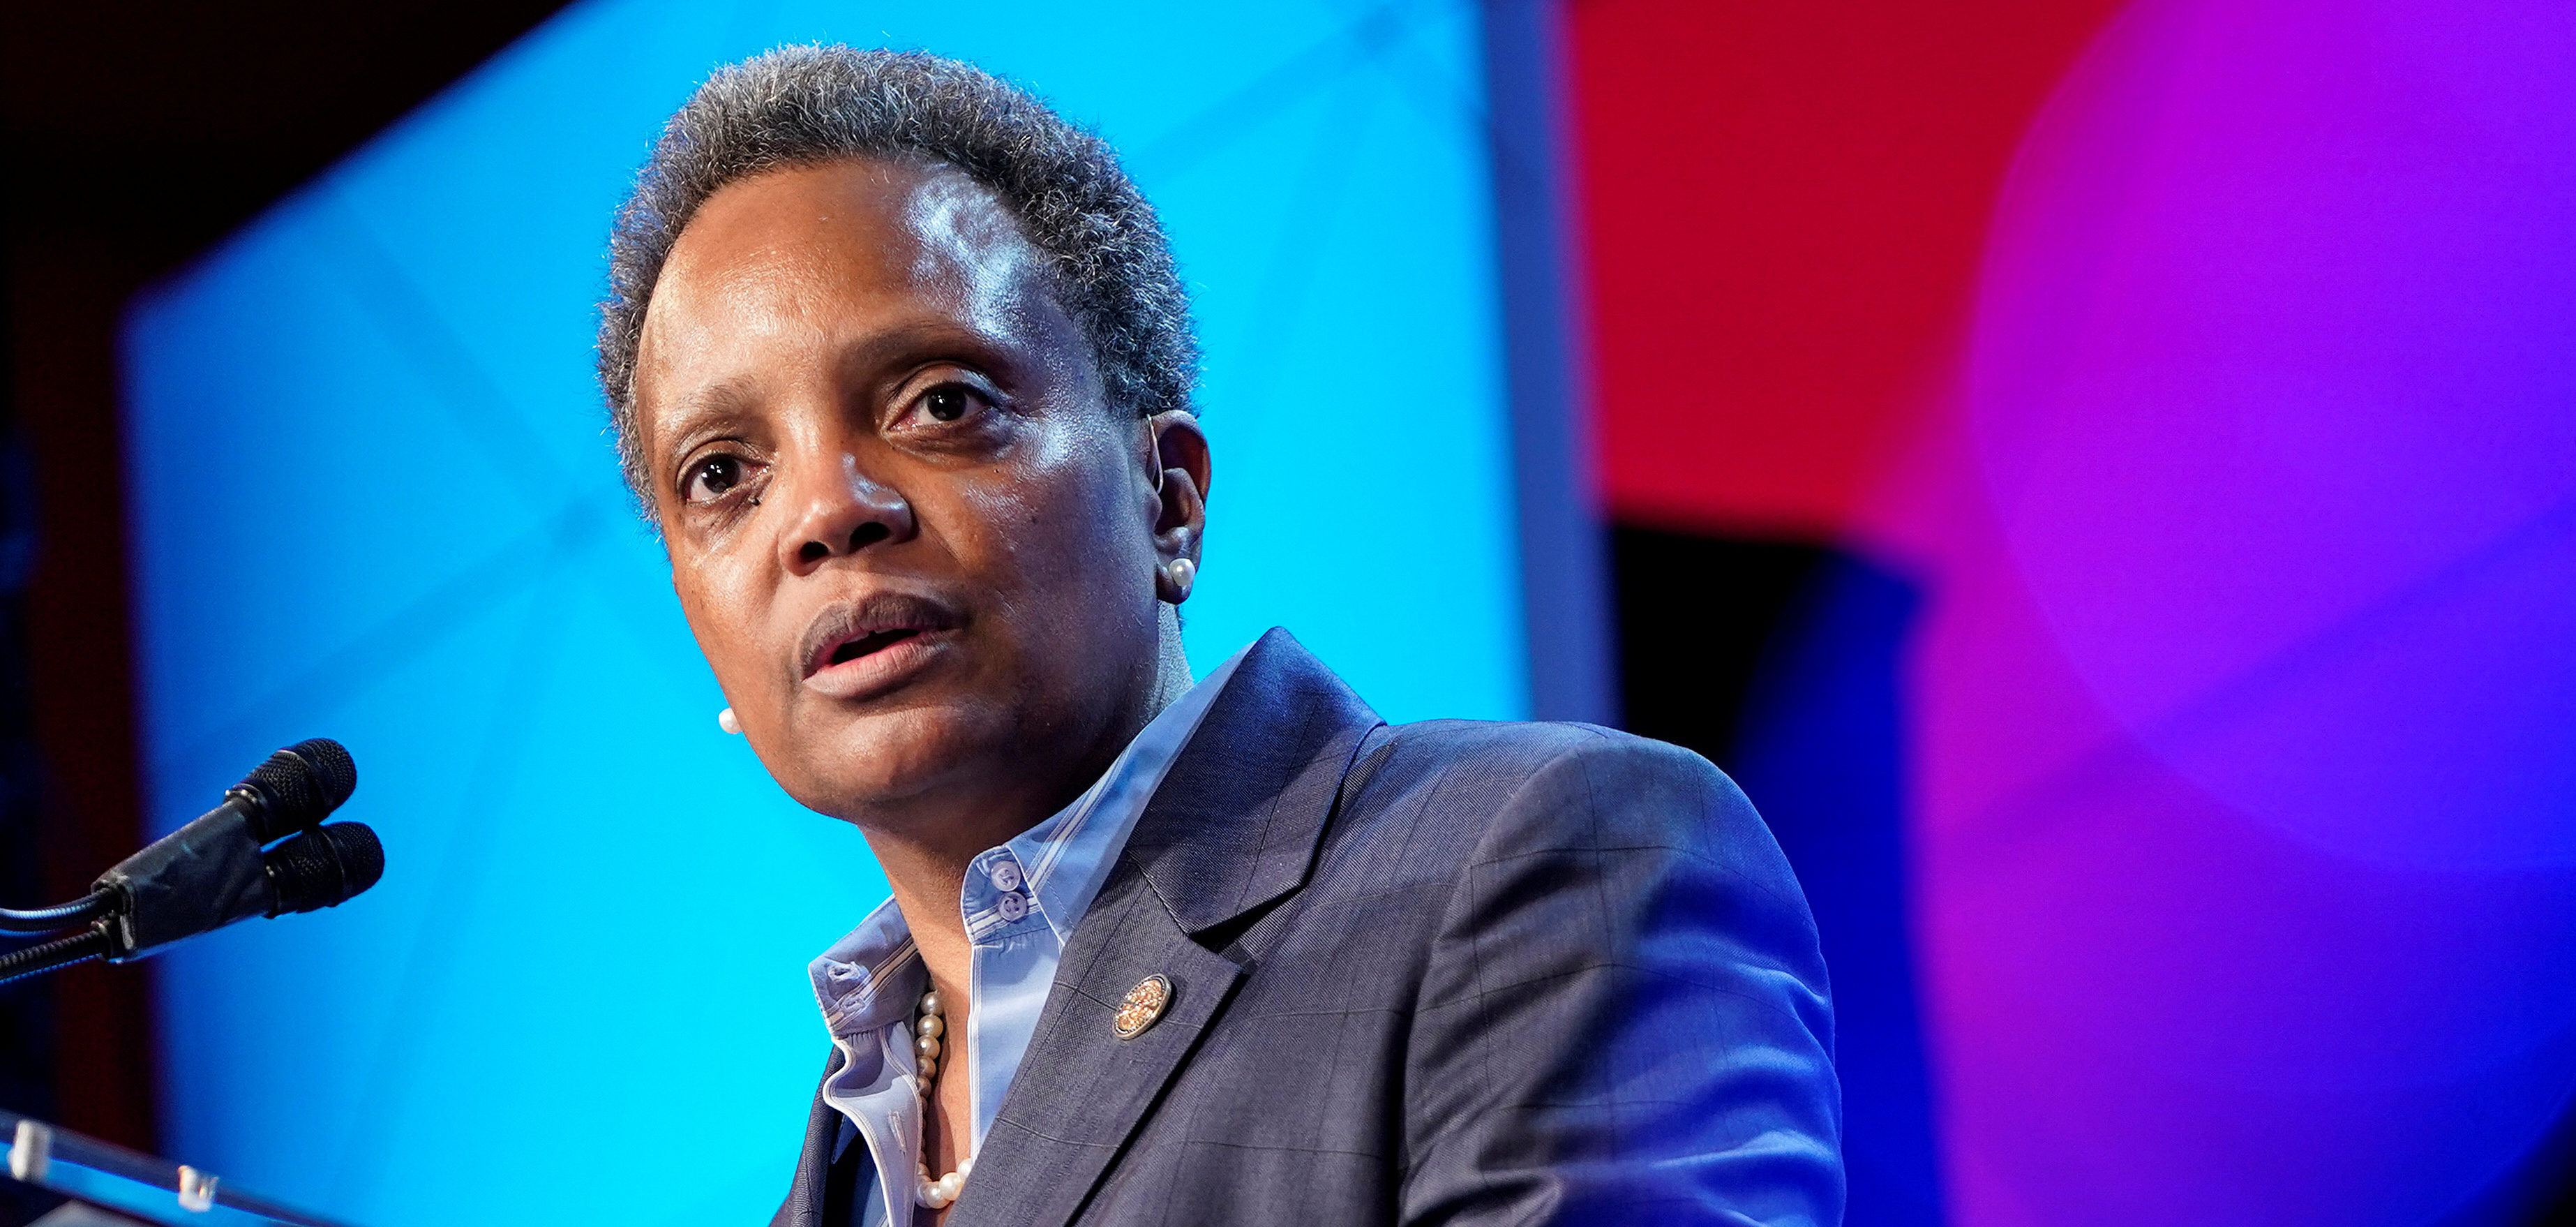 Mayor of Chicago Lori Lightfoot speaks at the U.S. Conference of Mayors 88th Winter Meeting in Washington, U.S., January 23, 2020. REUTERS/Joshua Roberts